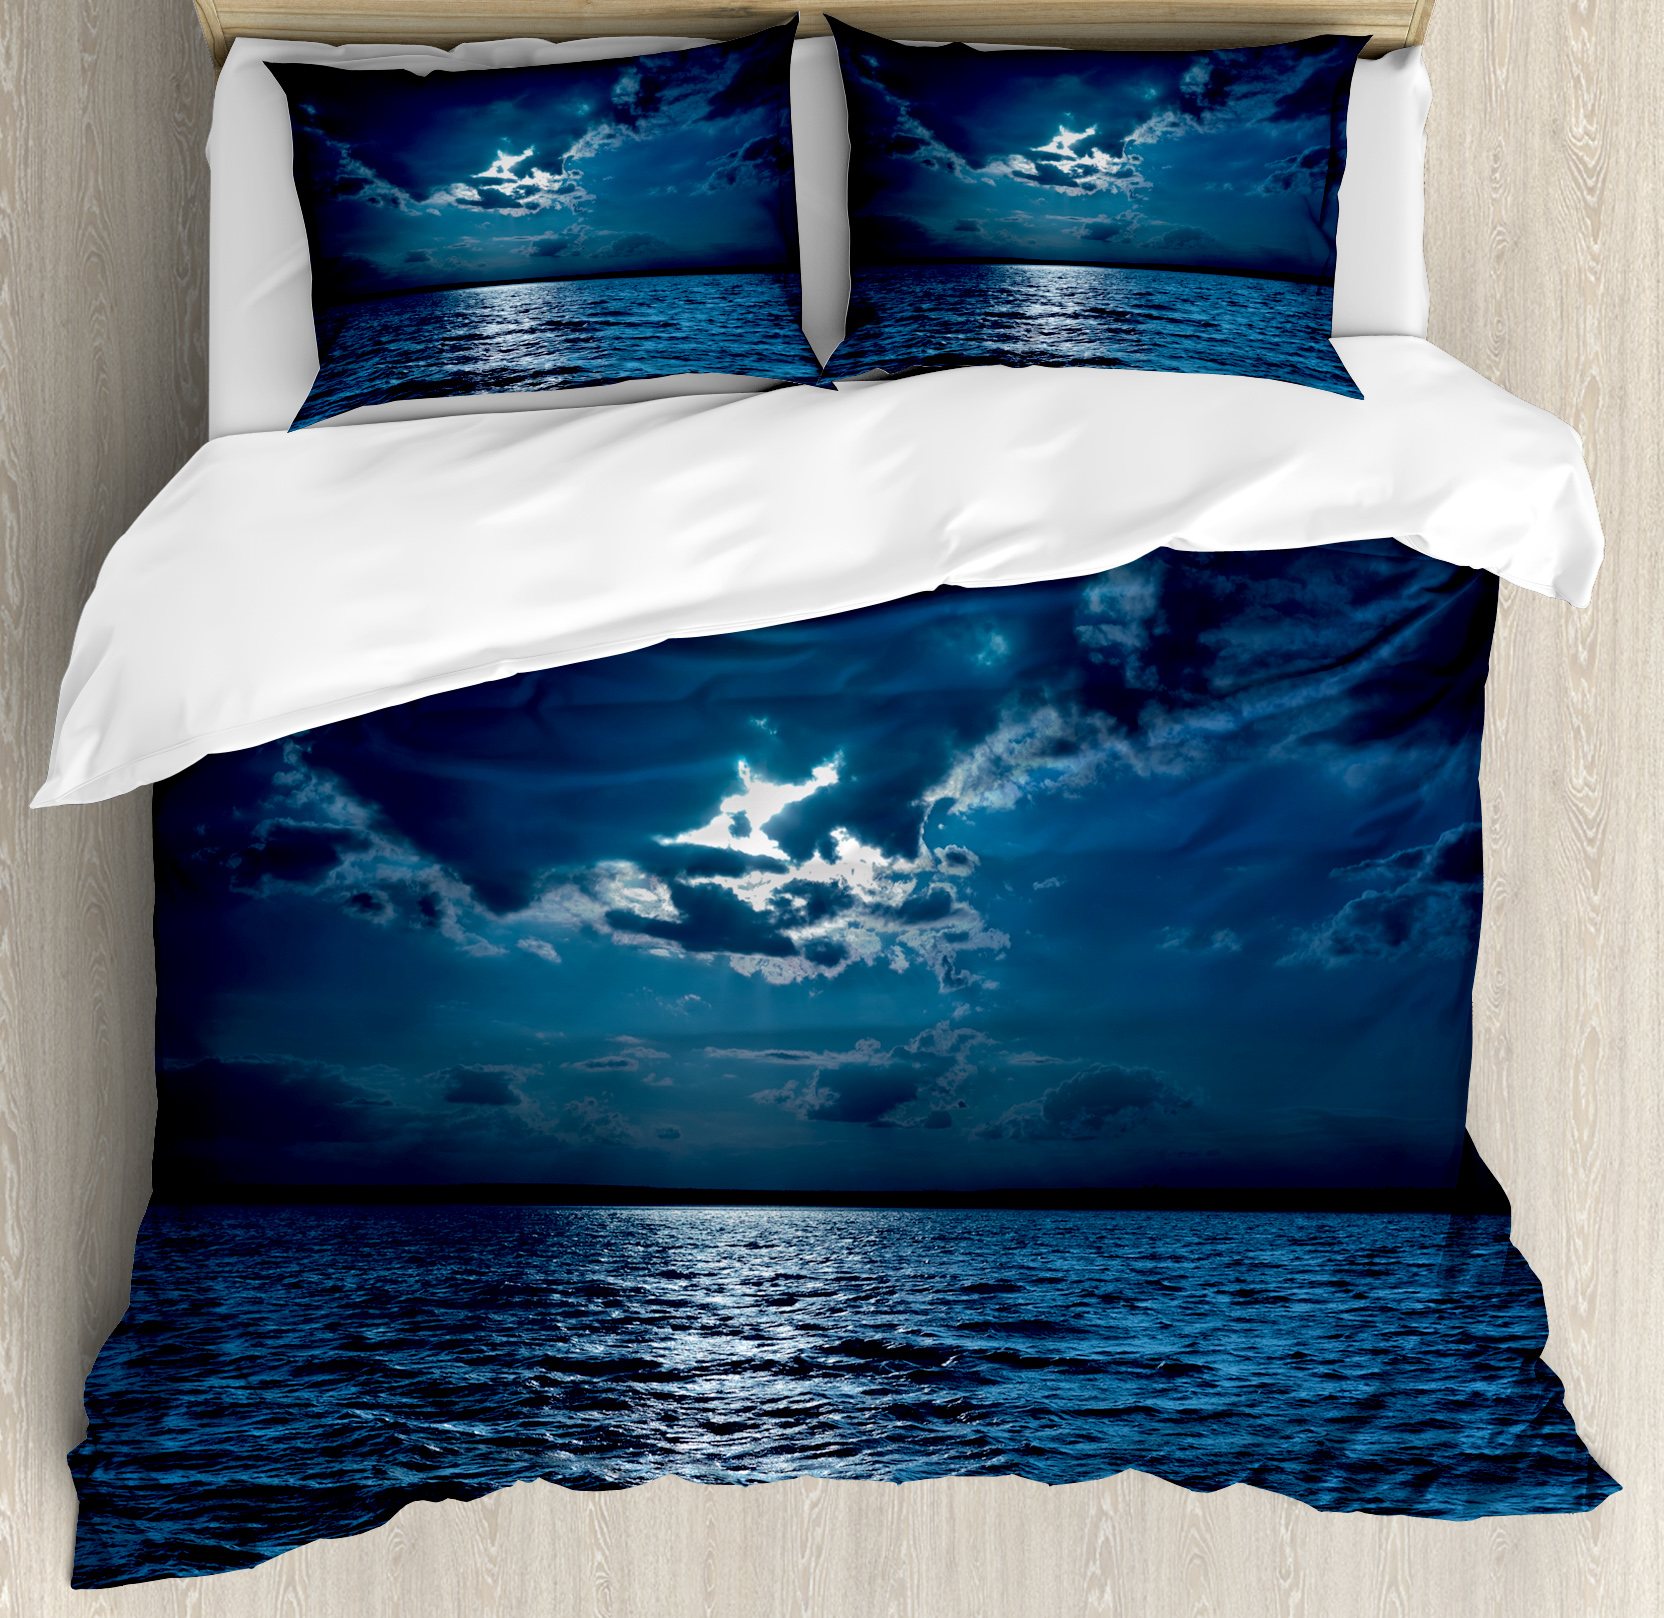 Night King Size Duvet Cover Set, Majestic Dramatic Sky Cl...